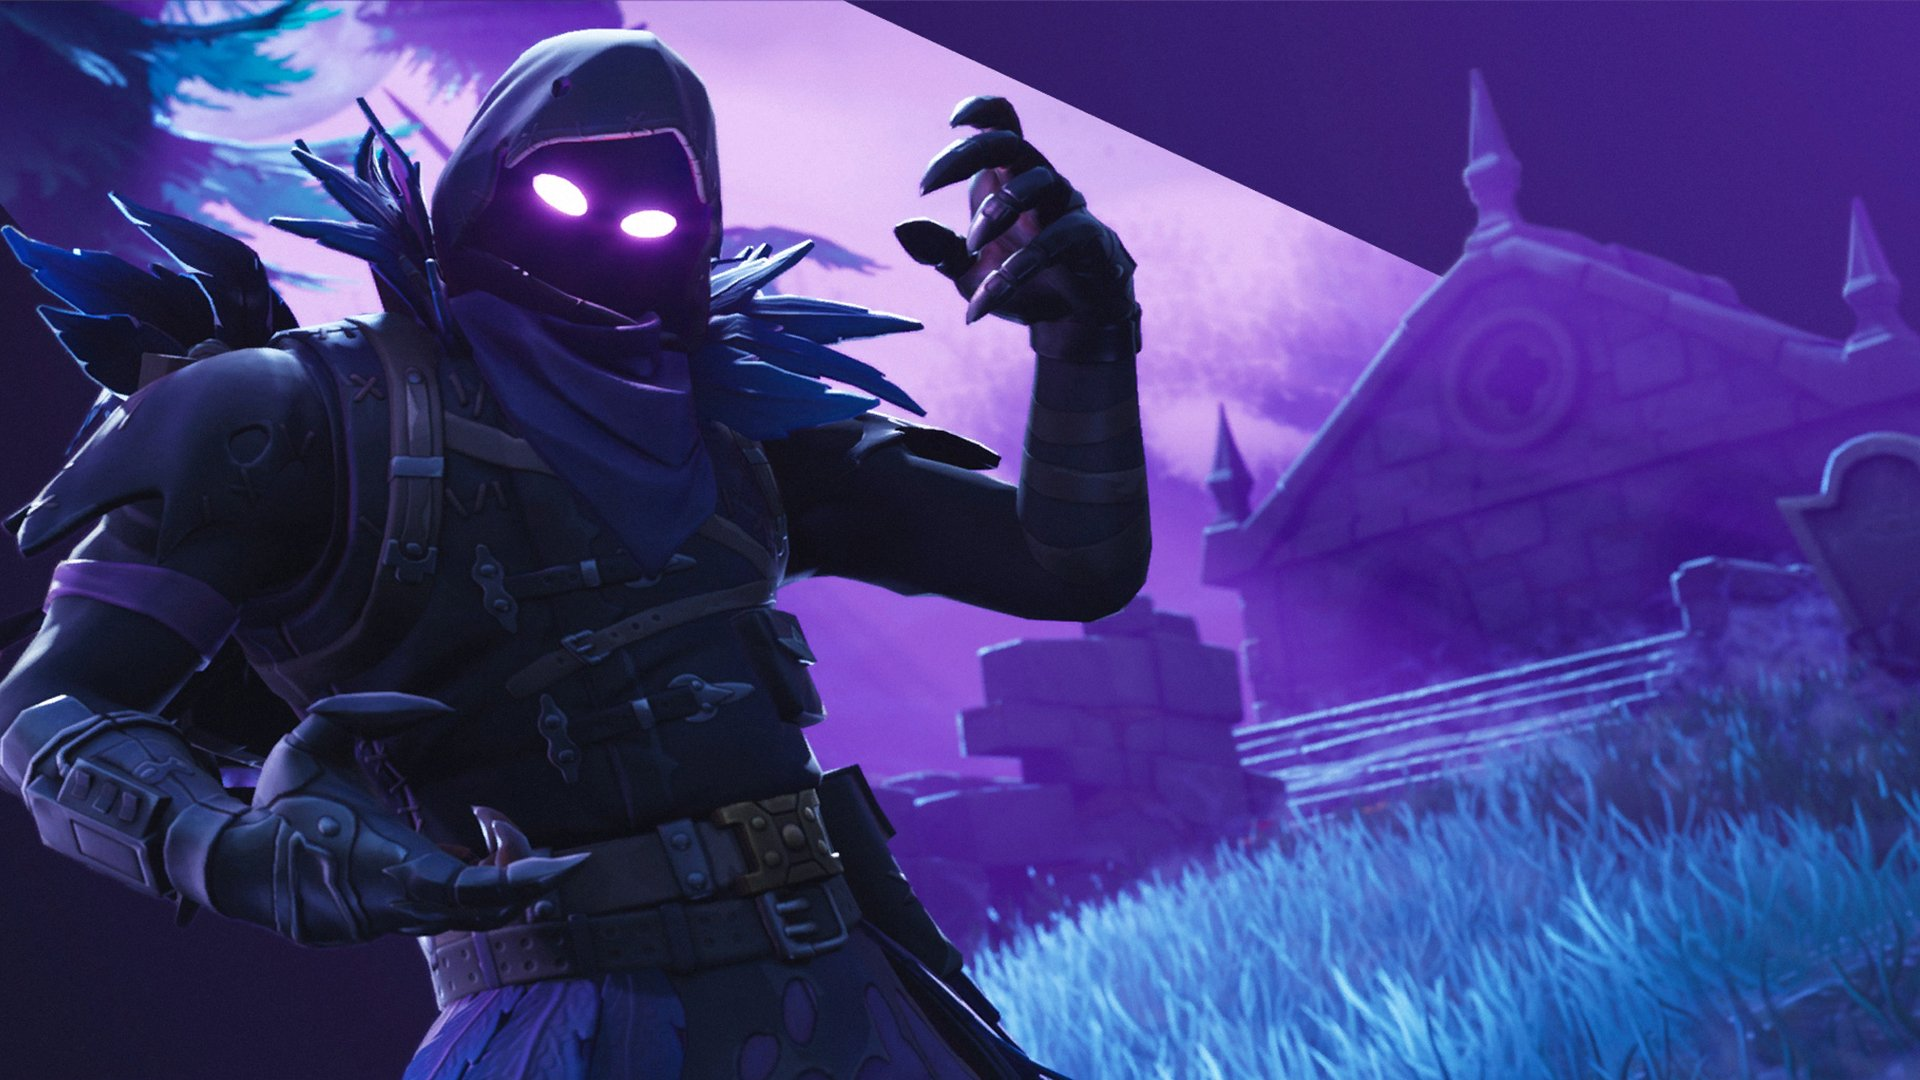 Fortnite Backgrounds Raven 4035 Wallpapers and Stock Photos 1920x1080